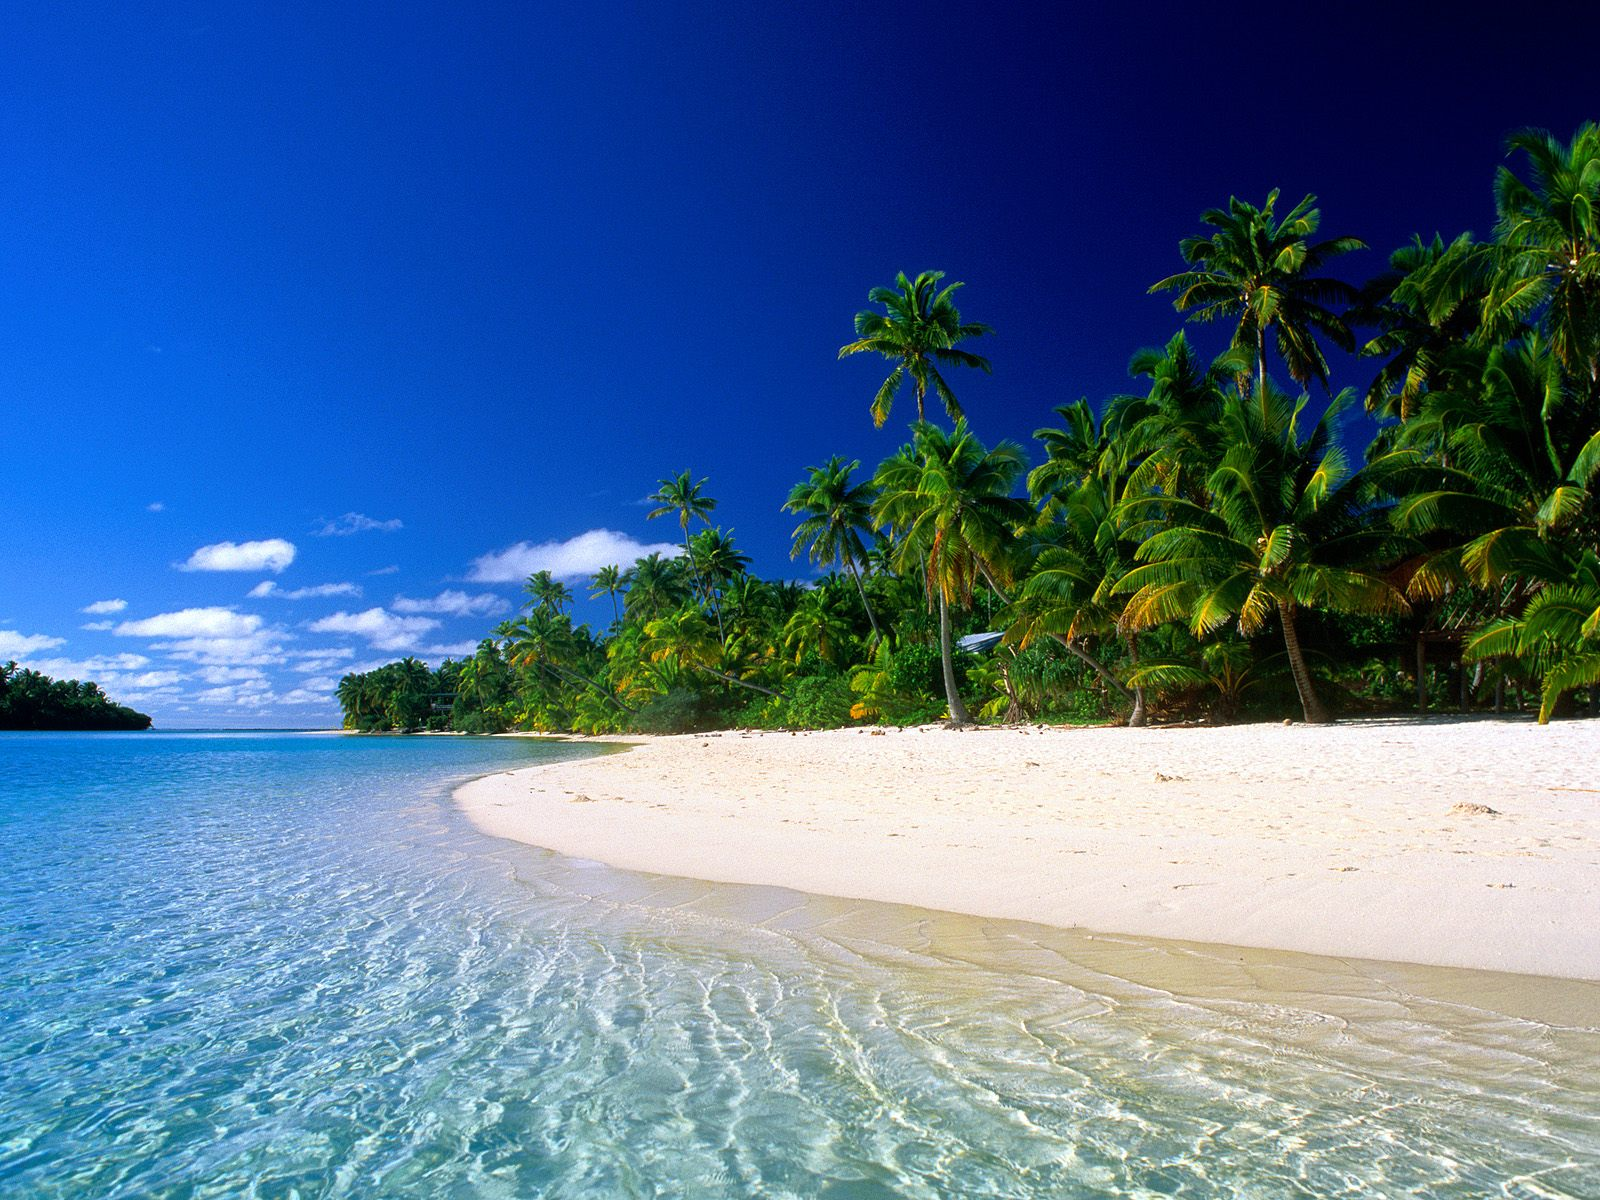 Cook Islands Wallpapers HD Wallpapers 1600x1200